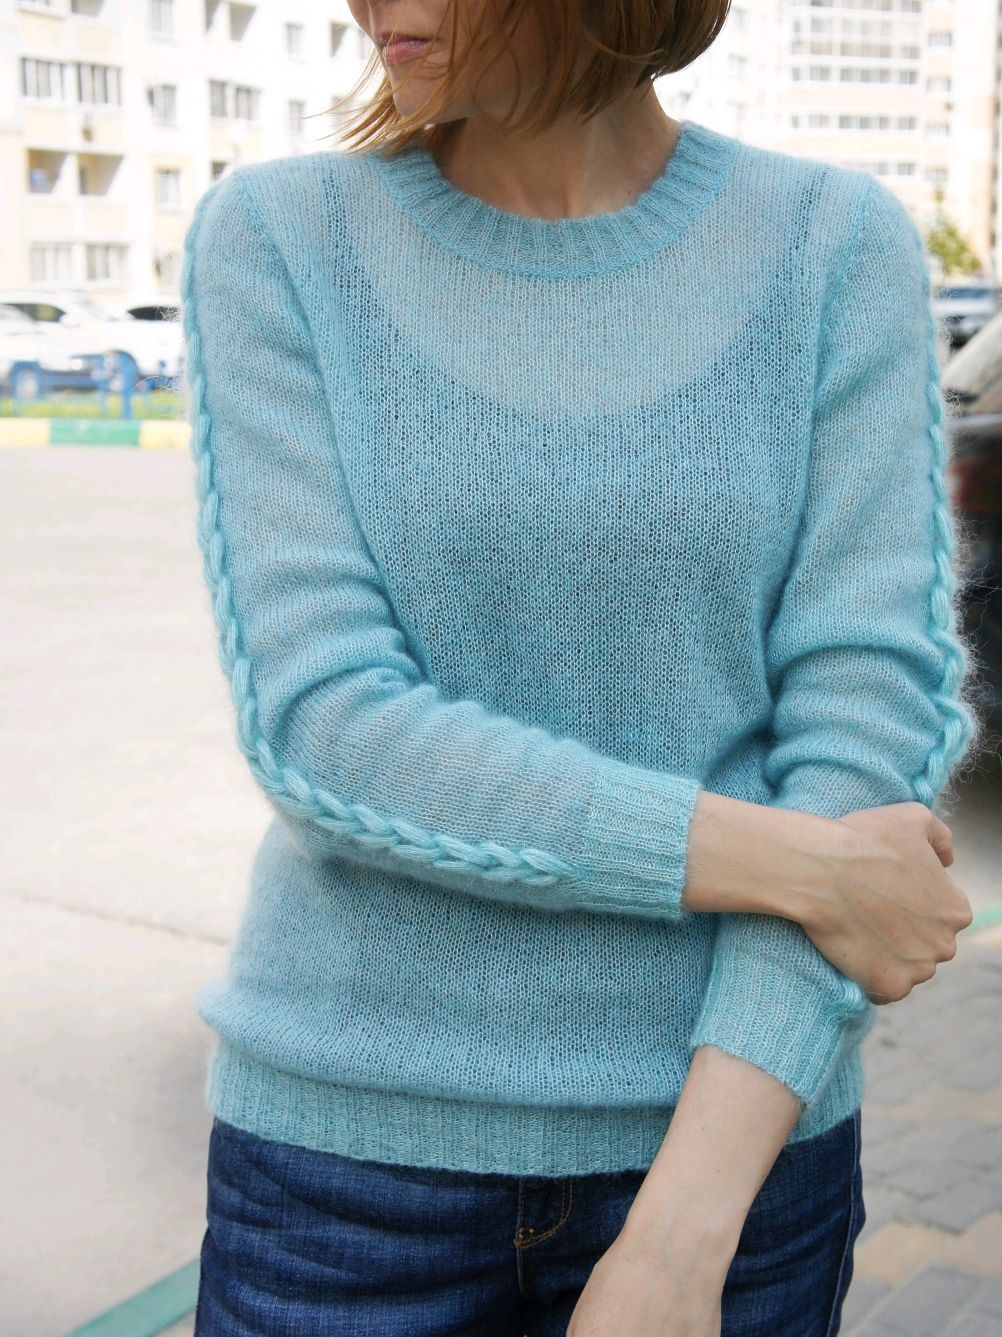 Sweater mohair icicle, Jumpers, Voronezh,  Фото №1